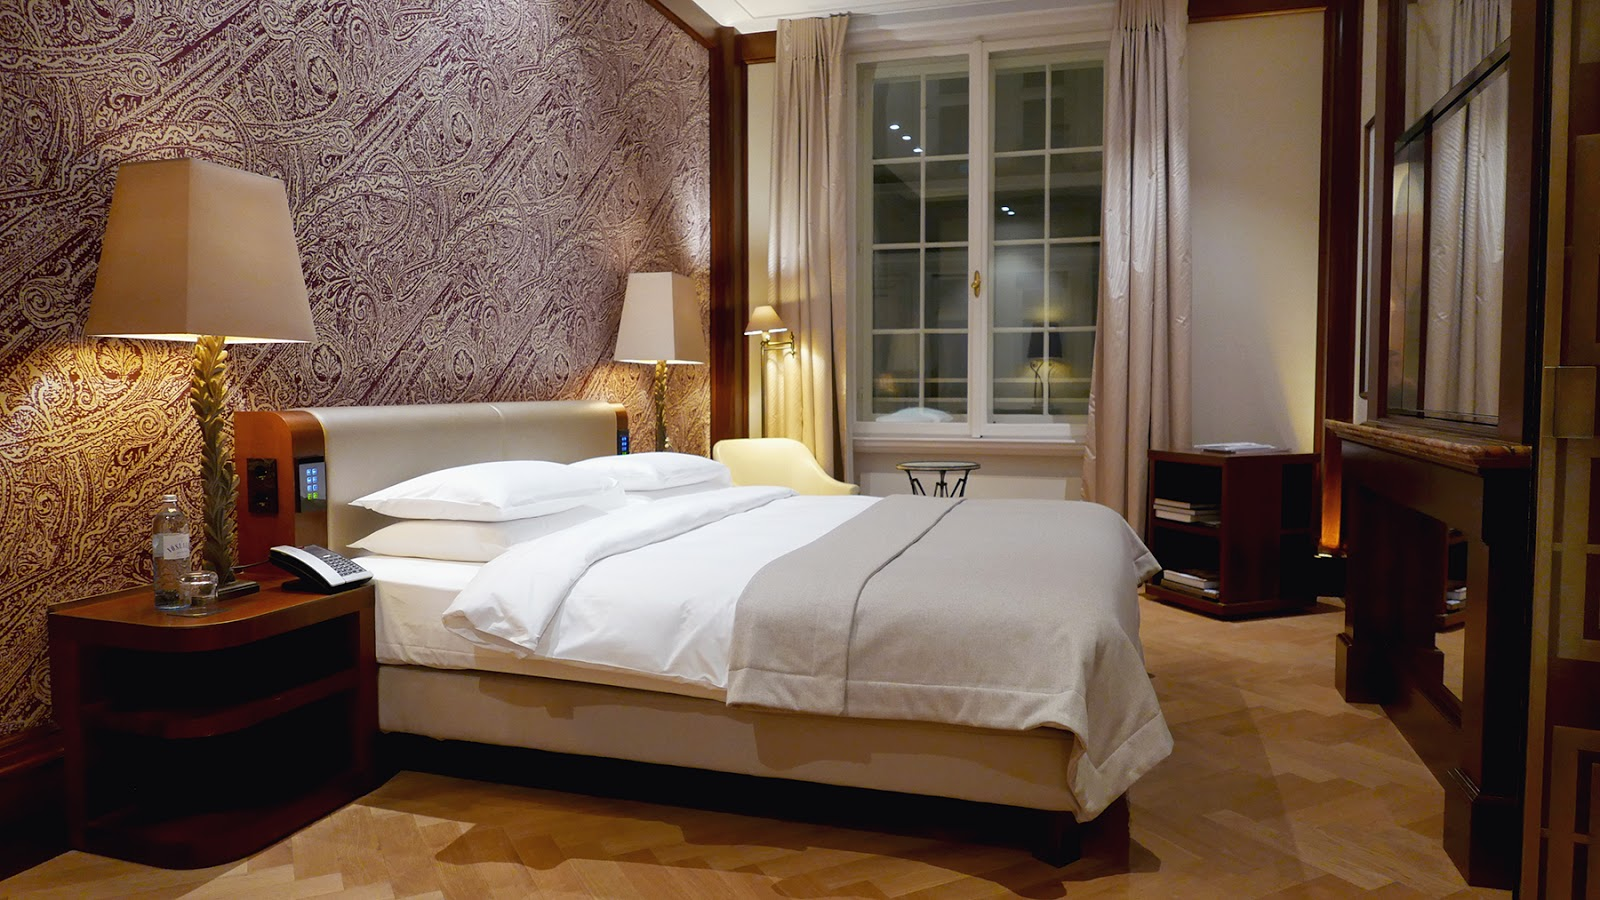 Euriental | luxury travel & style | Park Hyatt, Vienna